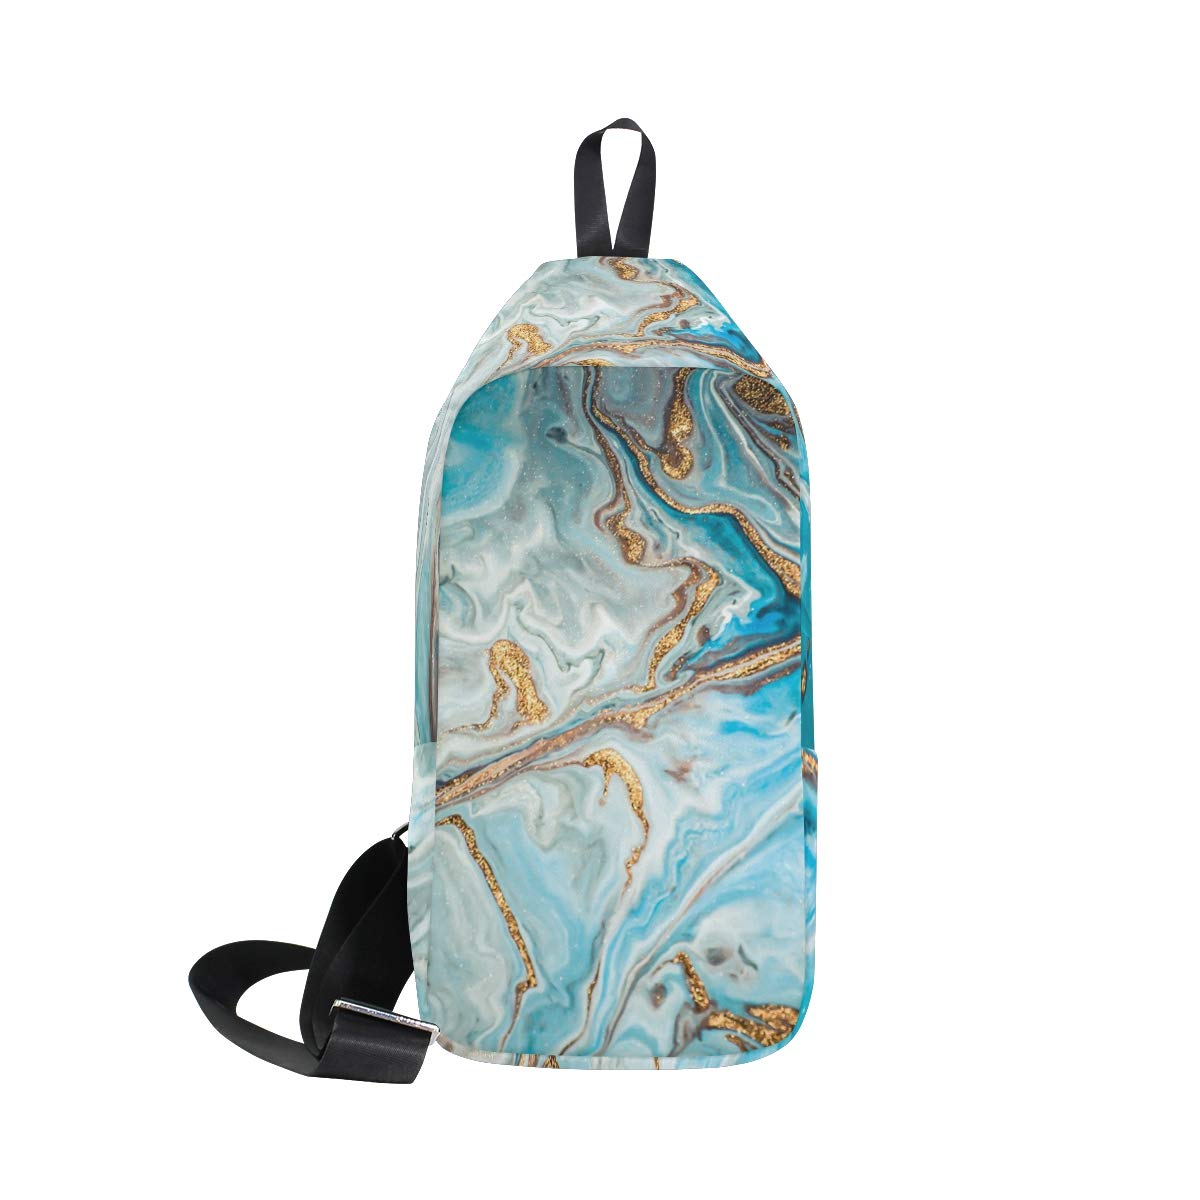 TFONE Abstract Marble Grain Crossbody Bag Lightweight Chest Shoulder Messenger Pack Backpack Sling Bag